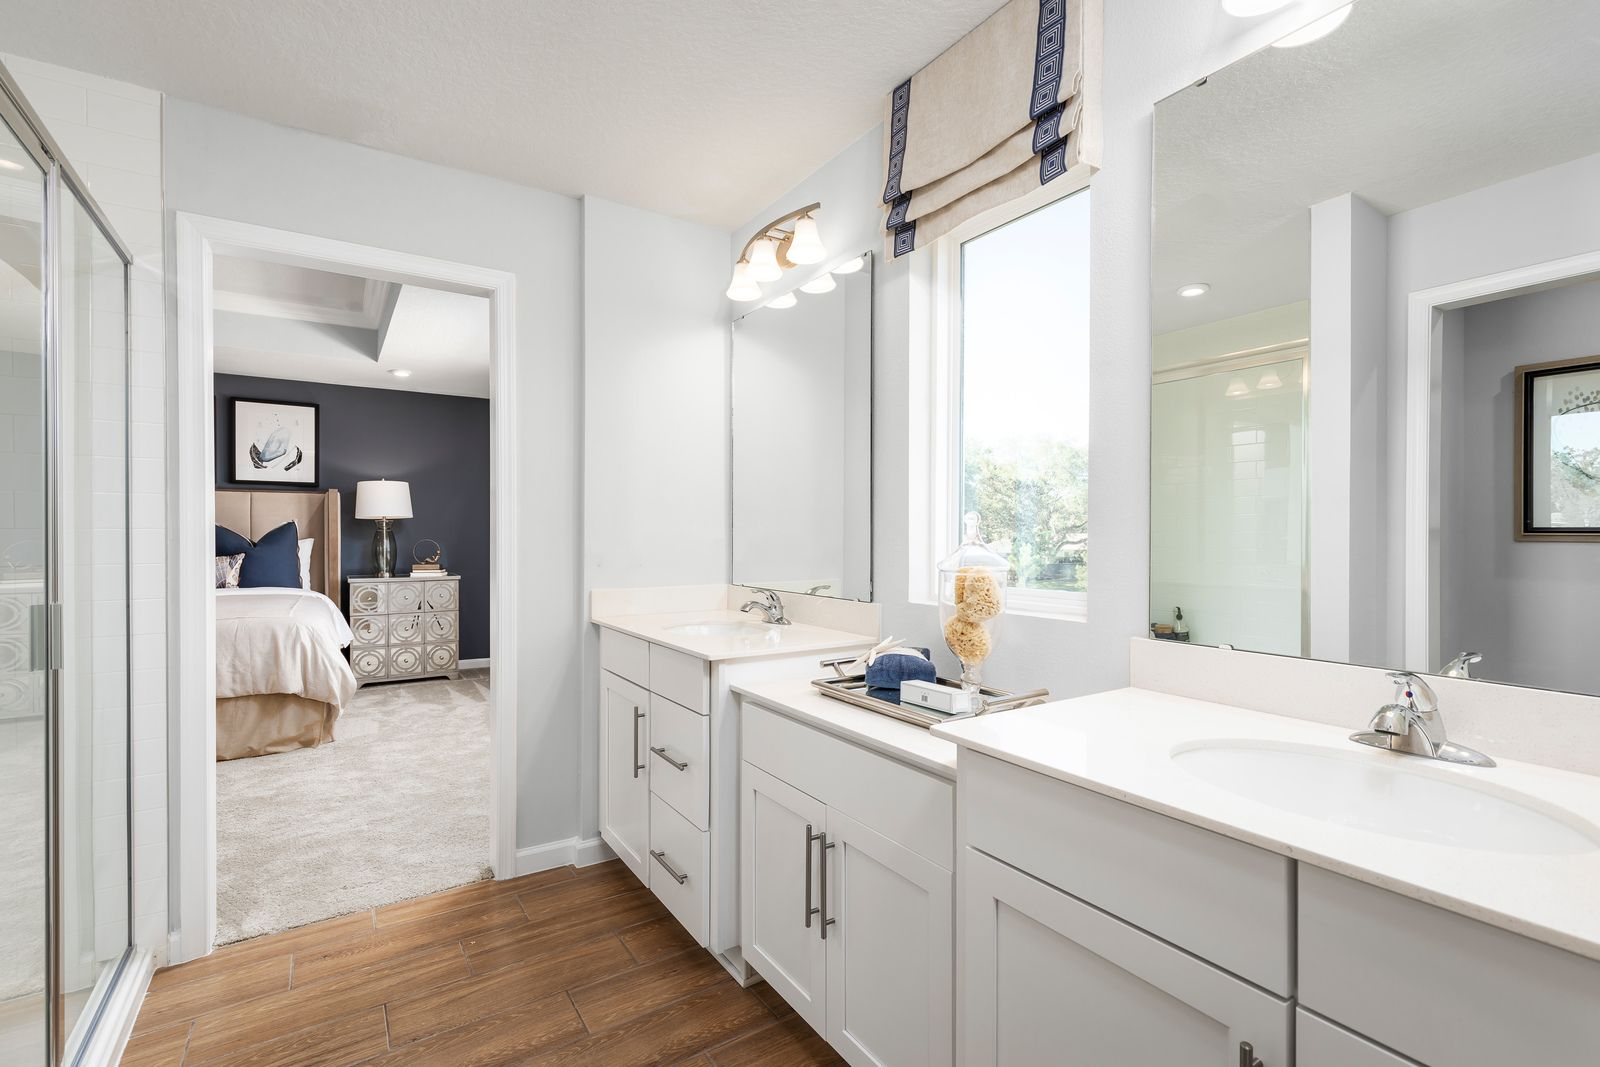 Bathroom featured in the Windermere By Ryan Homes in Orlando, FL